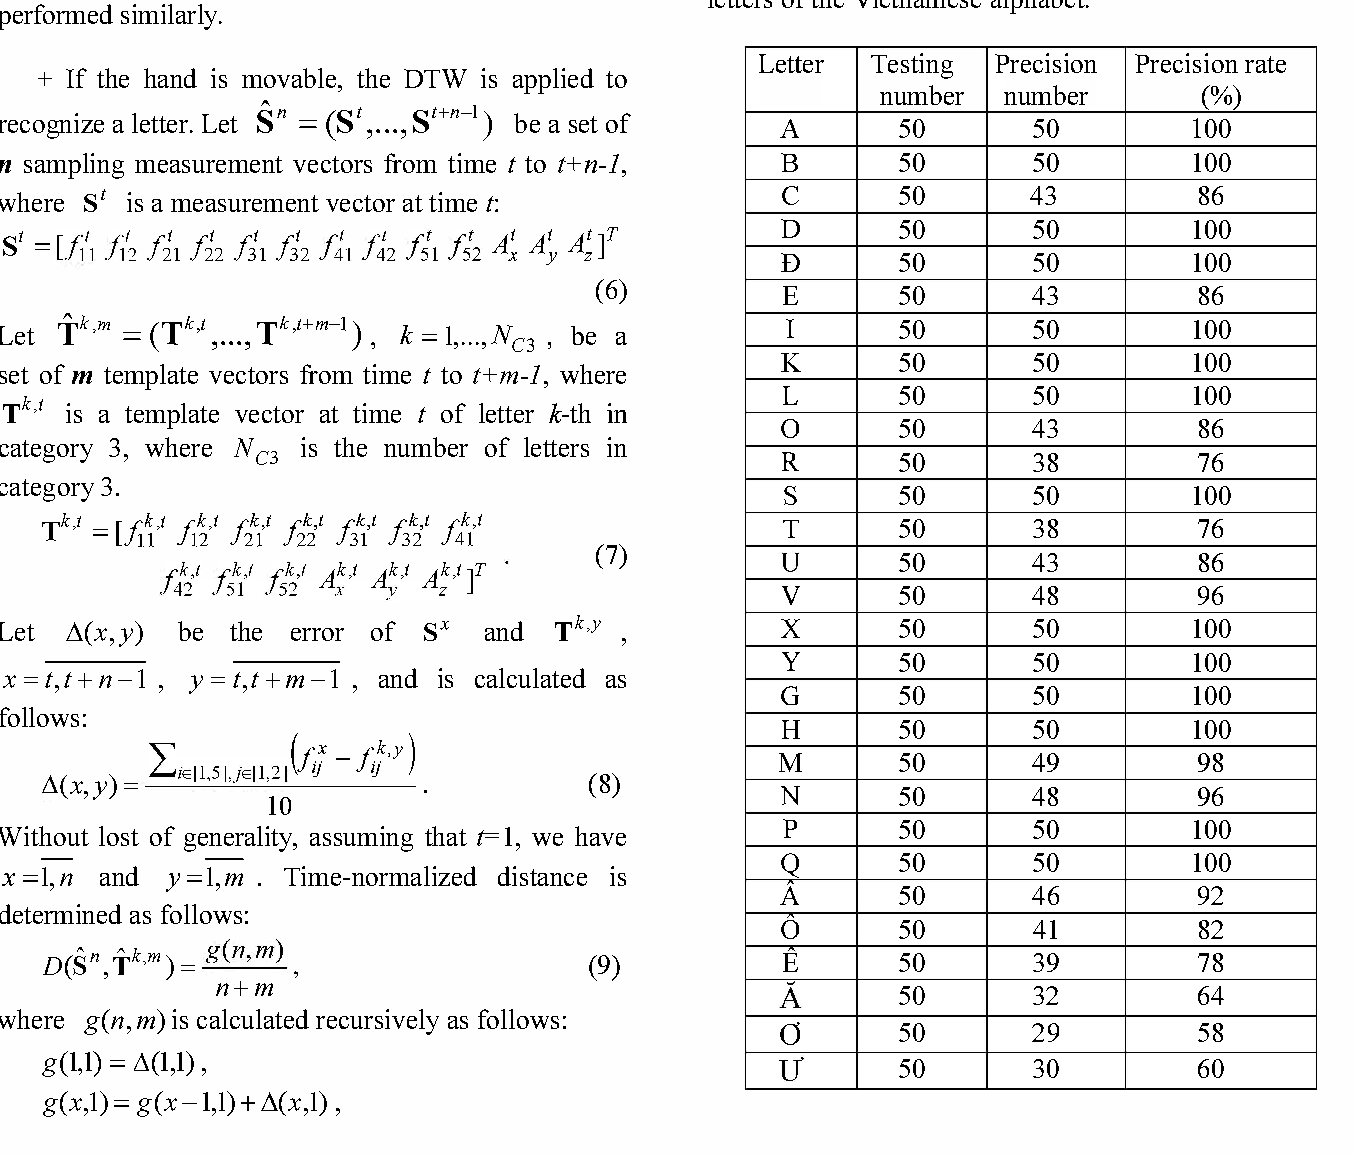 Table 1 Precision rates of sign language recognition for letters of the Vietnamese alphabet.